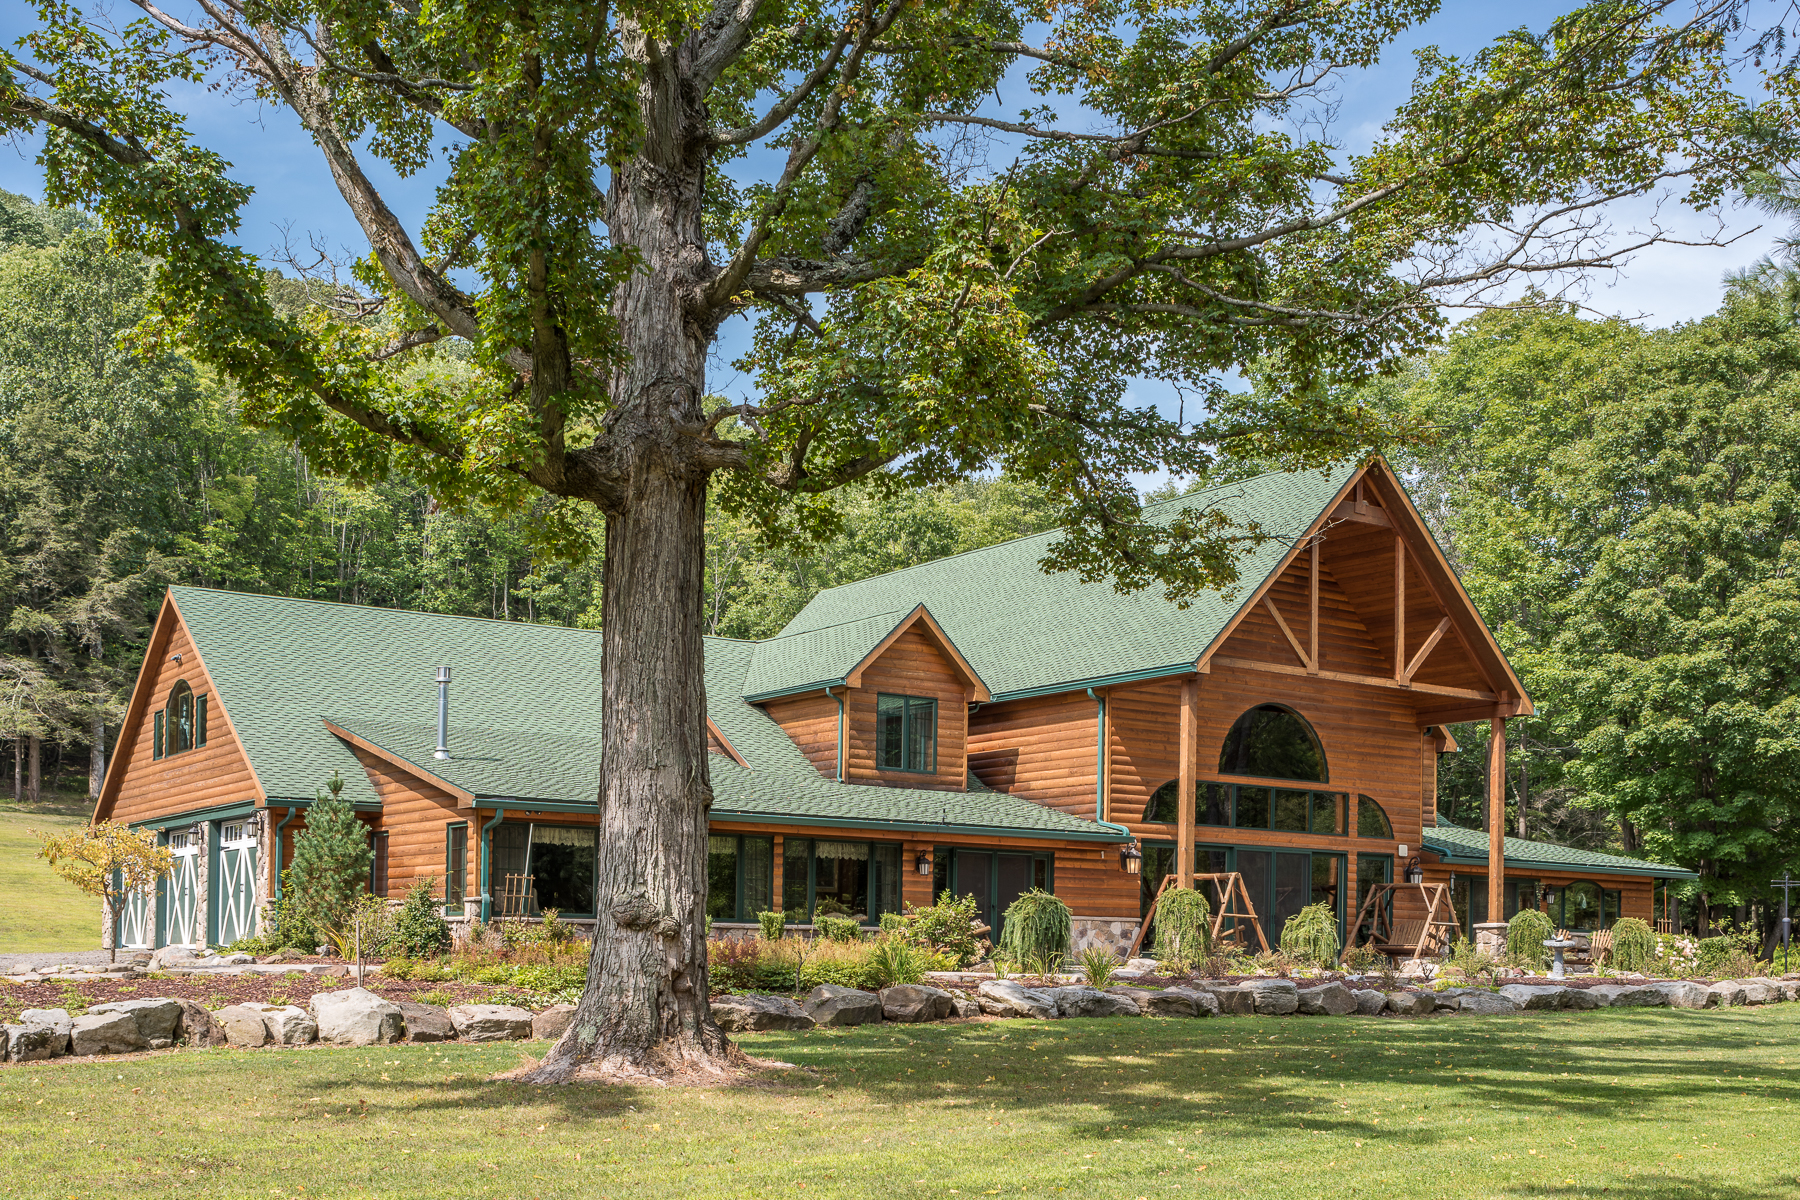 Single Family Homes for Sale at Hemlock Brook Farm 458 Wolf Run Road Portville, New York 14727 United States